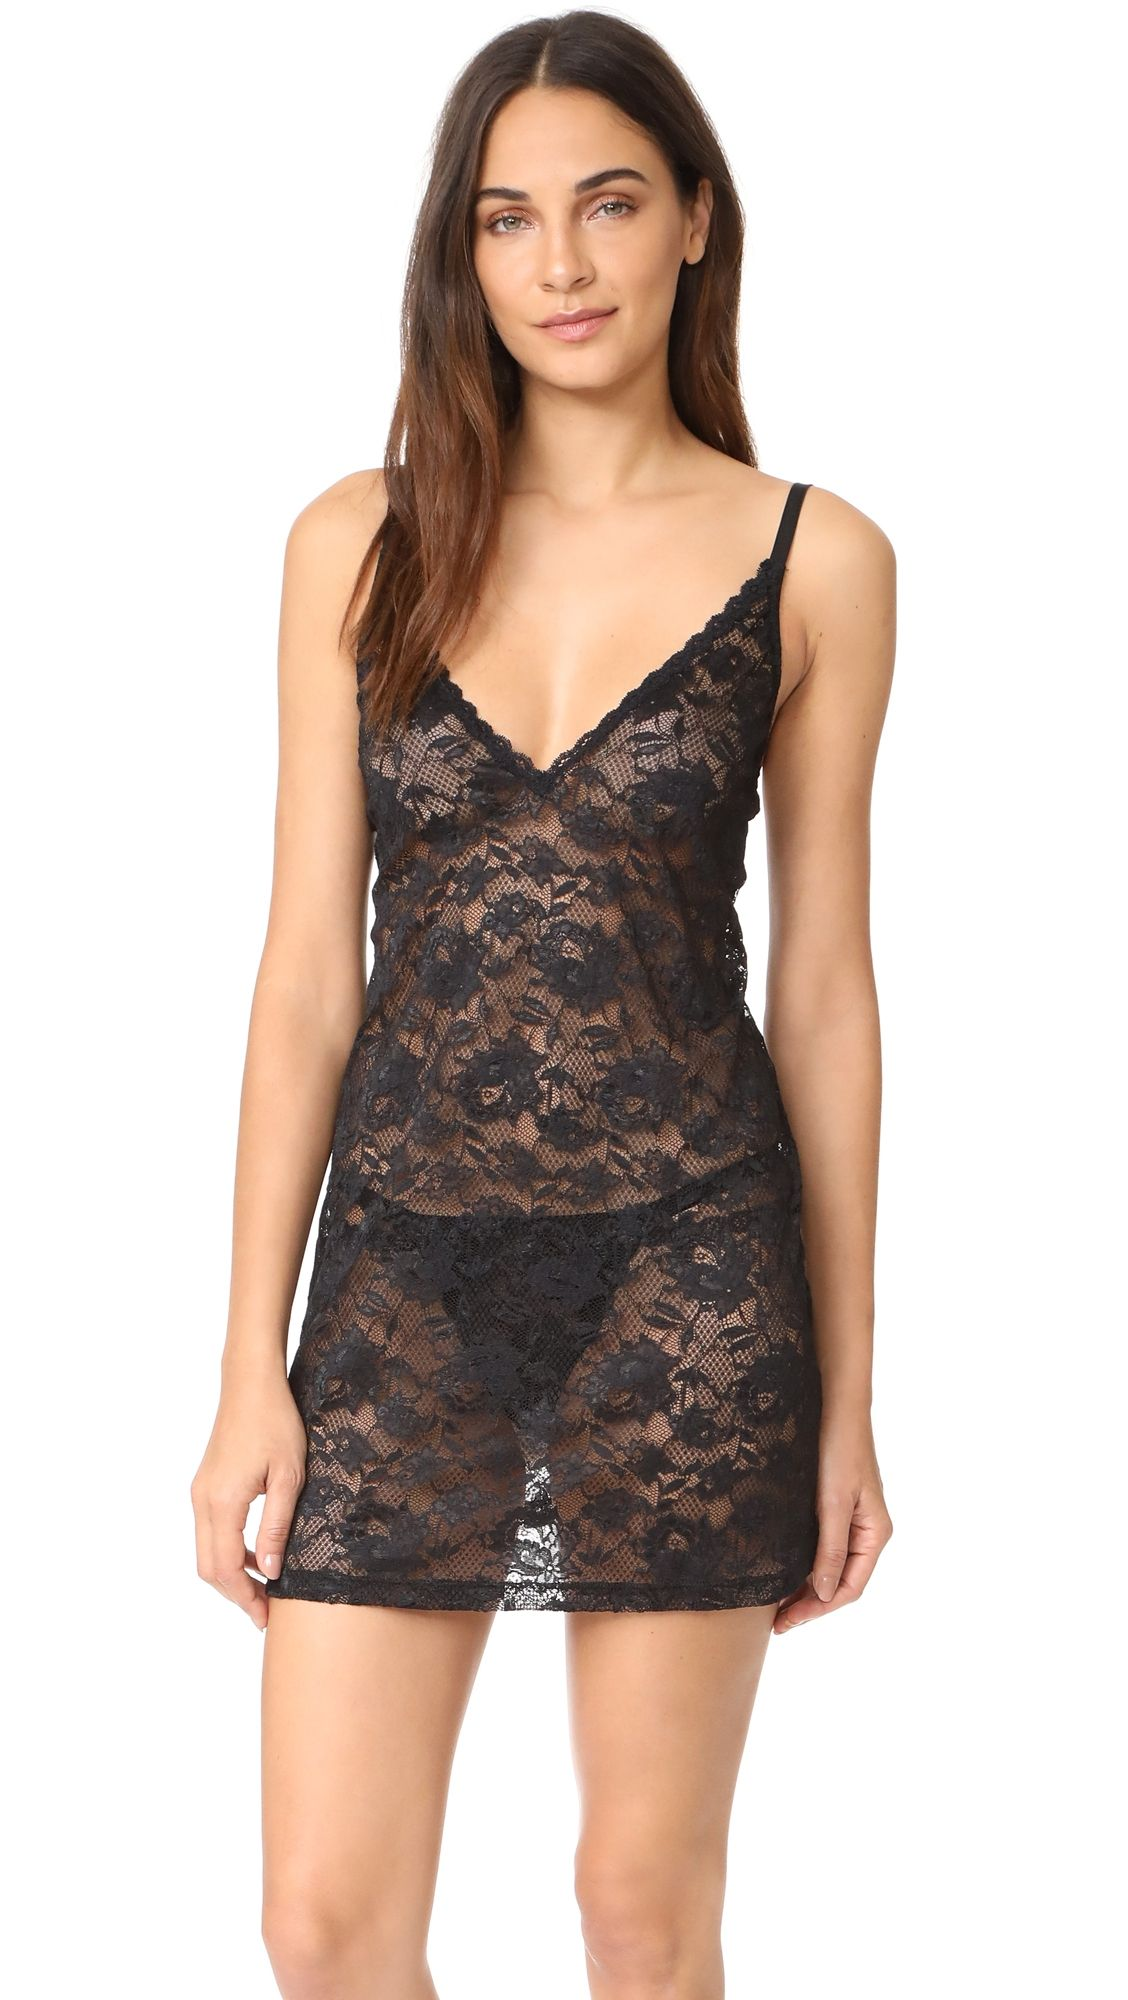 545be09bb Cosabella Never Say Never Nightie Chemise